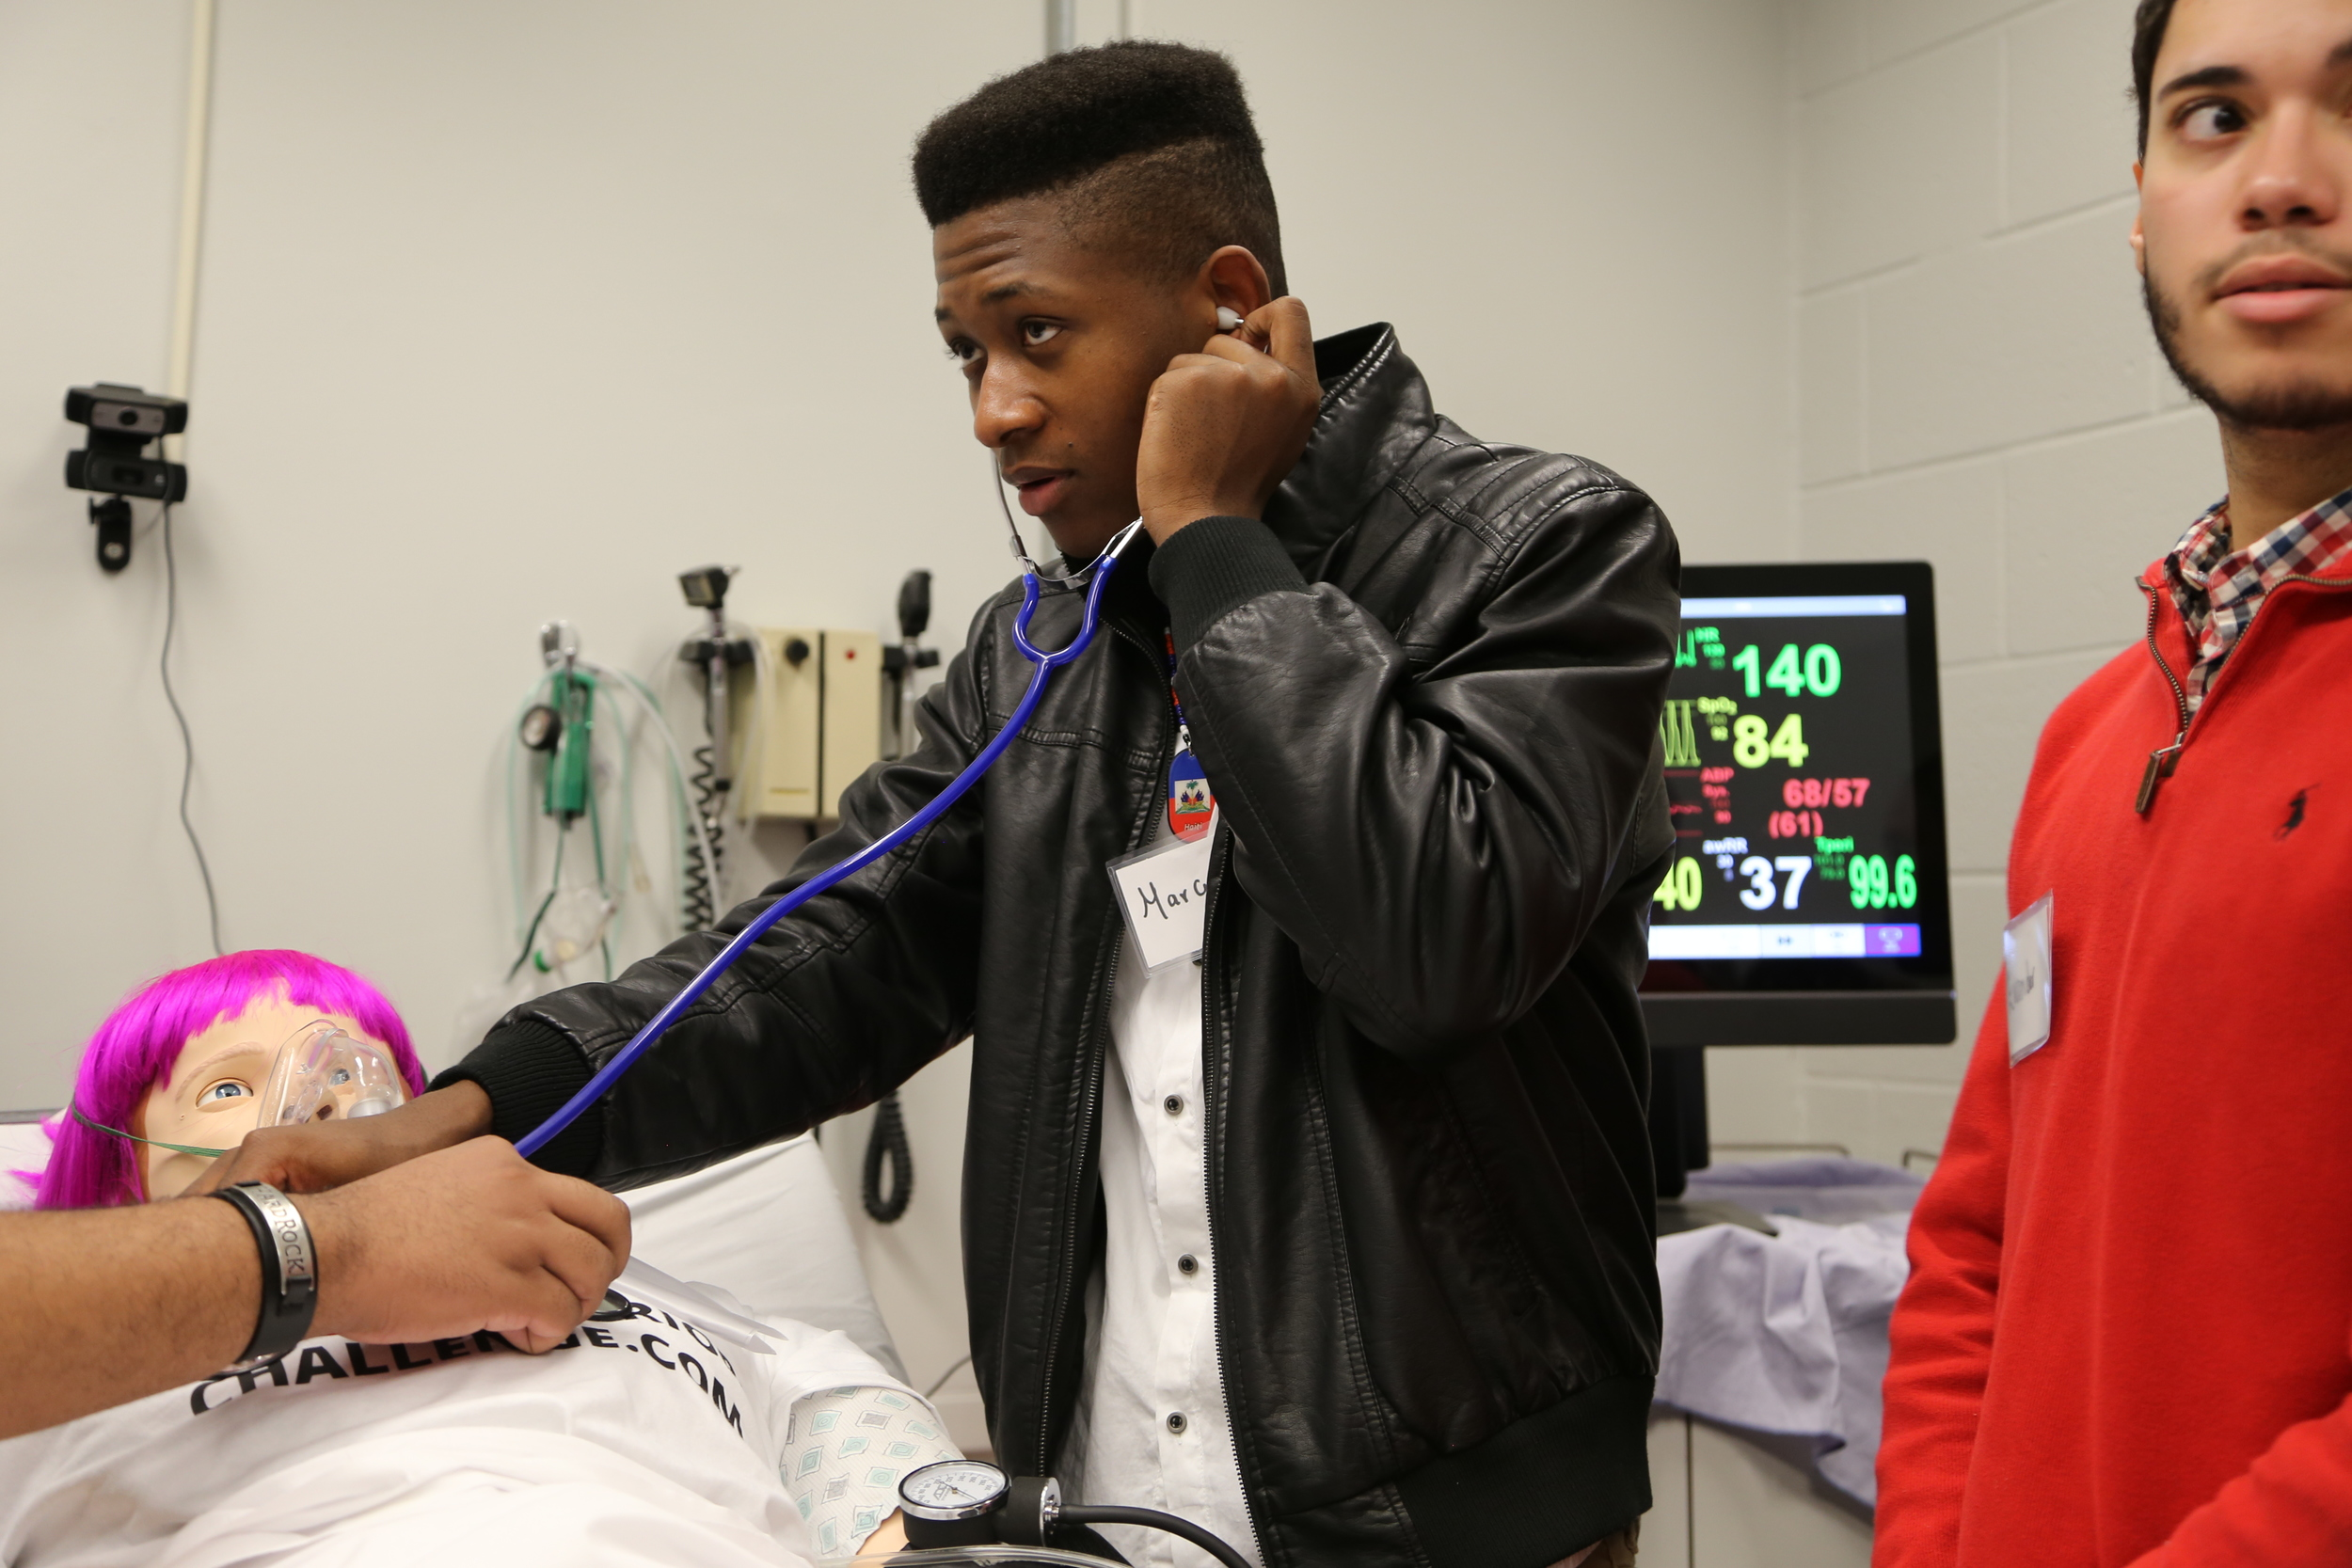 Marcus, Community Academy of Science & Health senior, listens for lung sounds